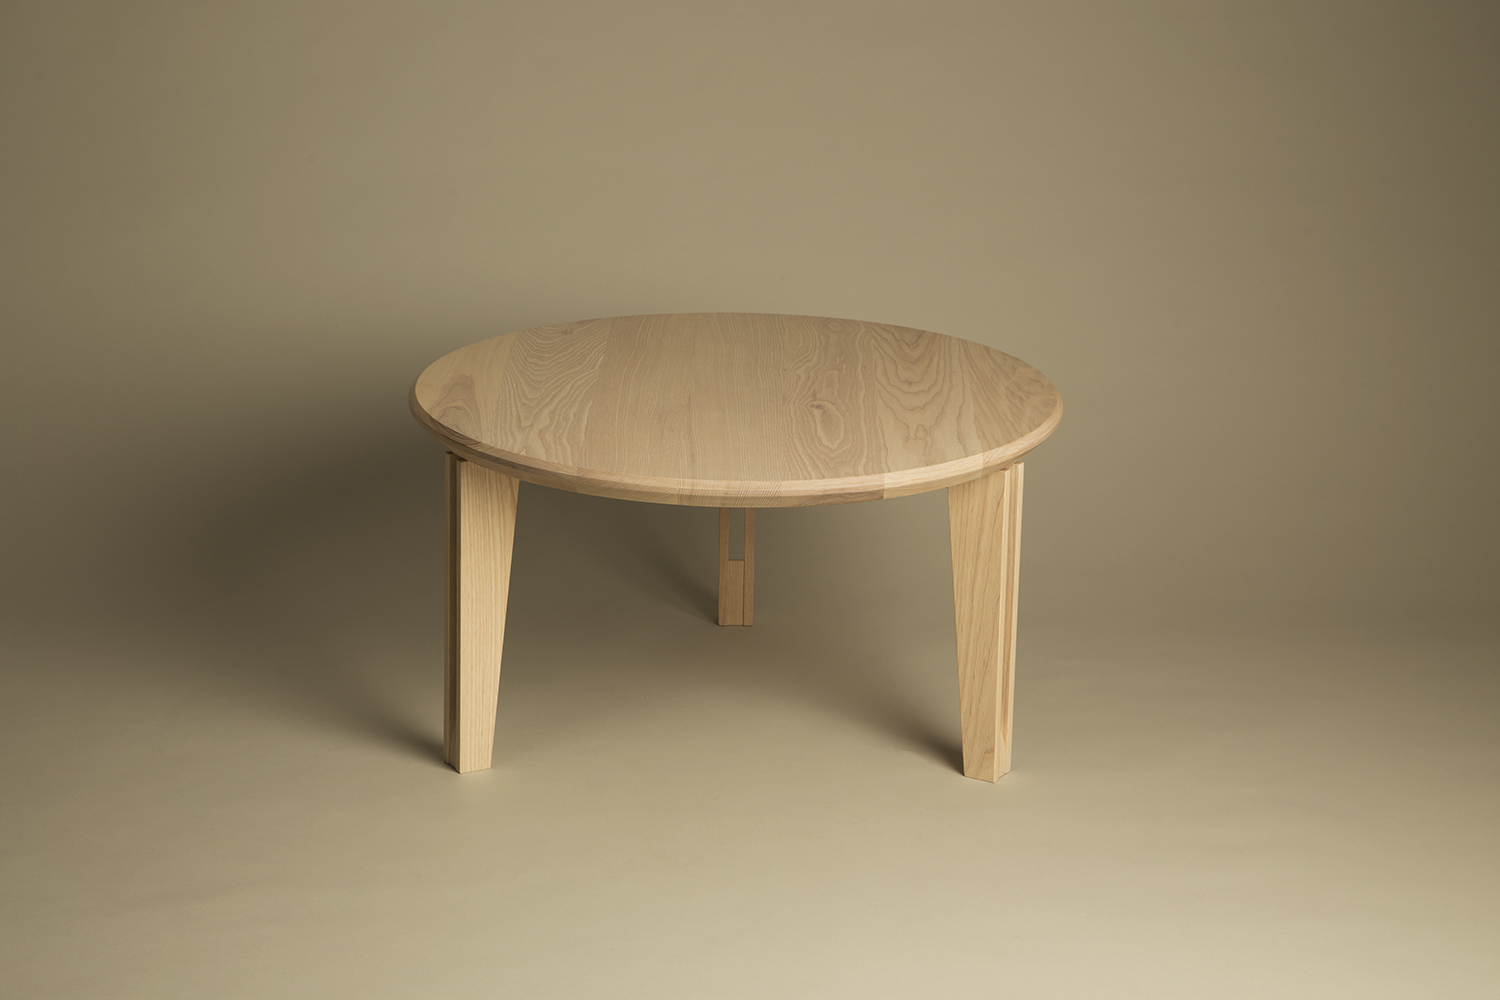 Brace Coffee Table by Alan Flannery Furniture Design L7.jpg